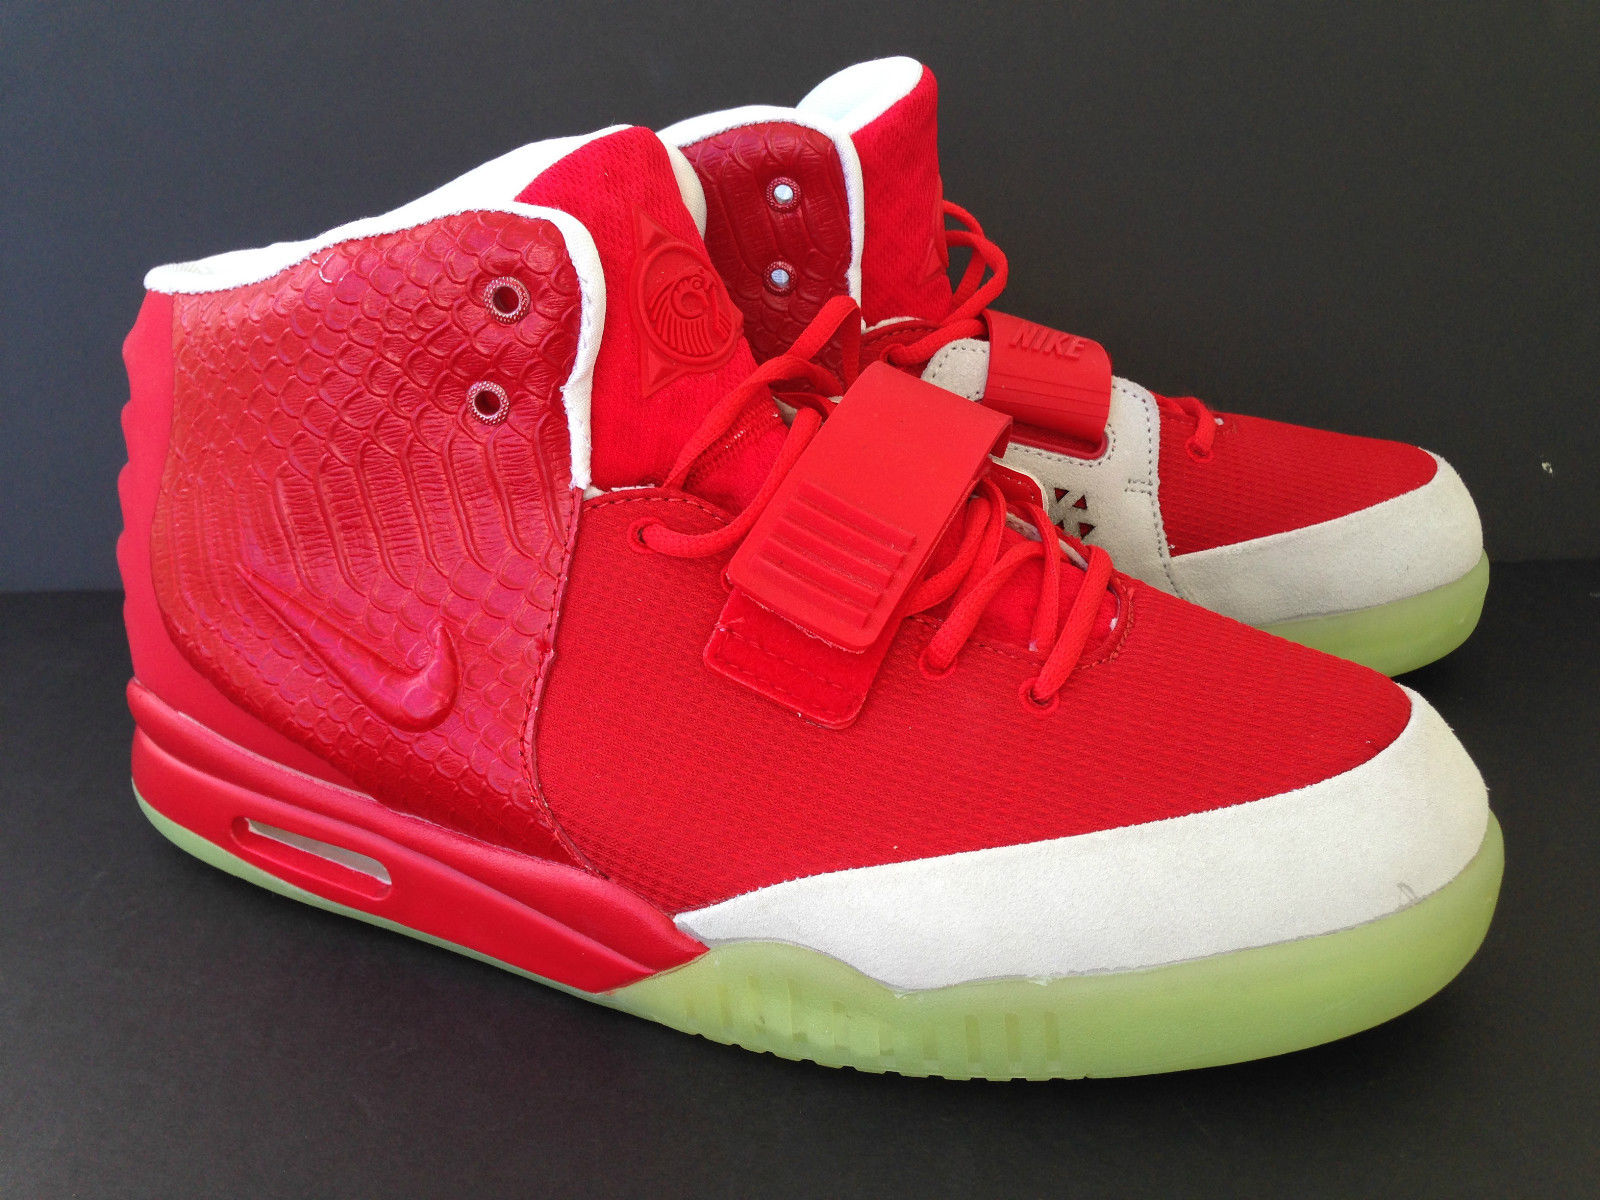 104faa4af7368 One Month Later - 10 Facts About the Red October Nike Air Yeezy 2 a Month  After Its Release